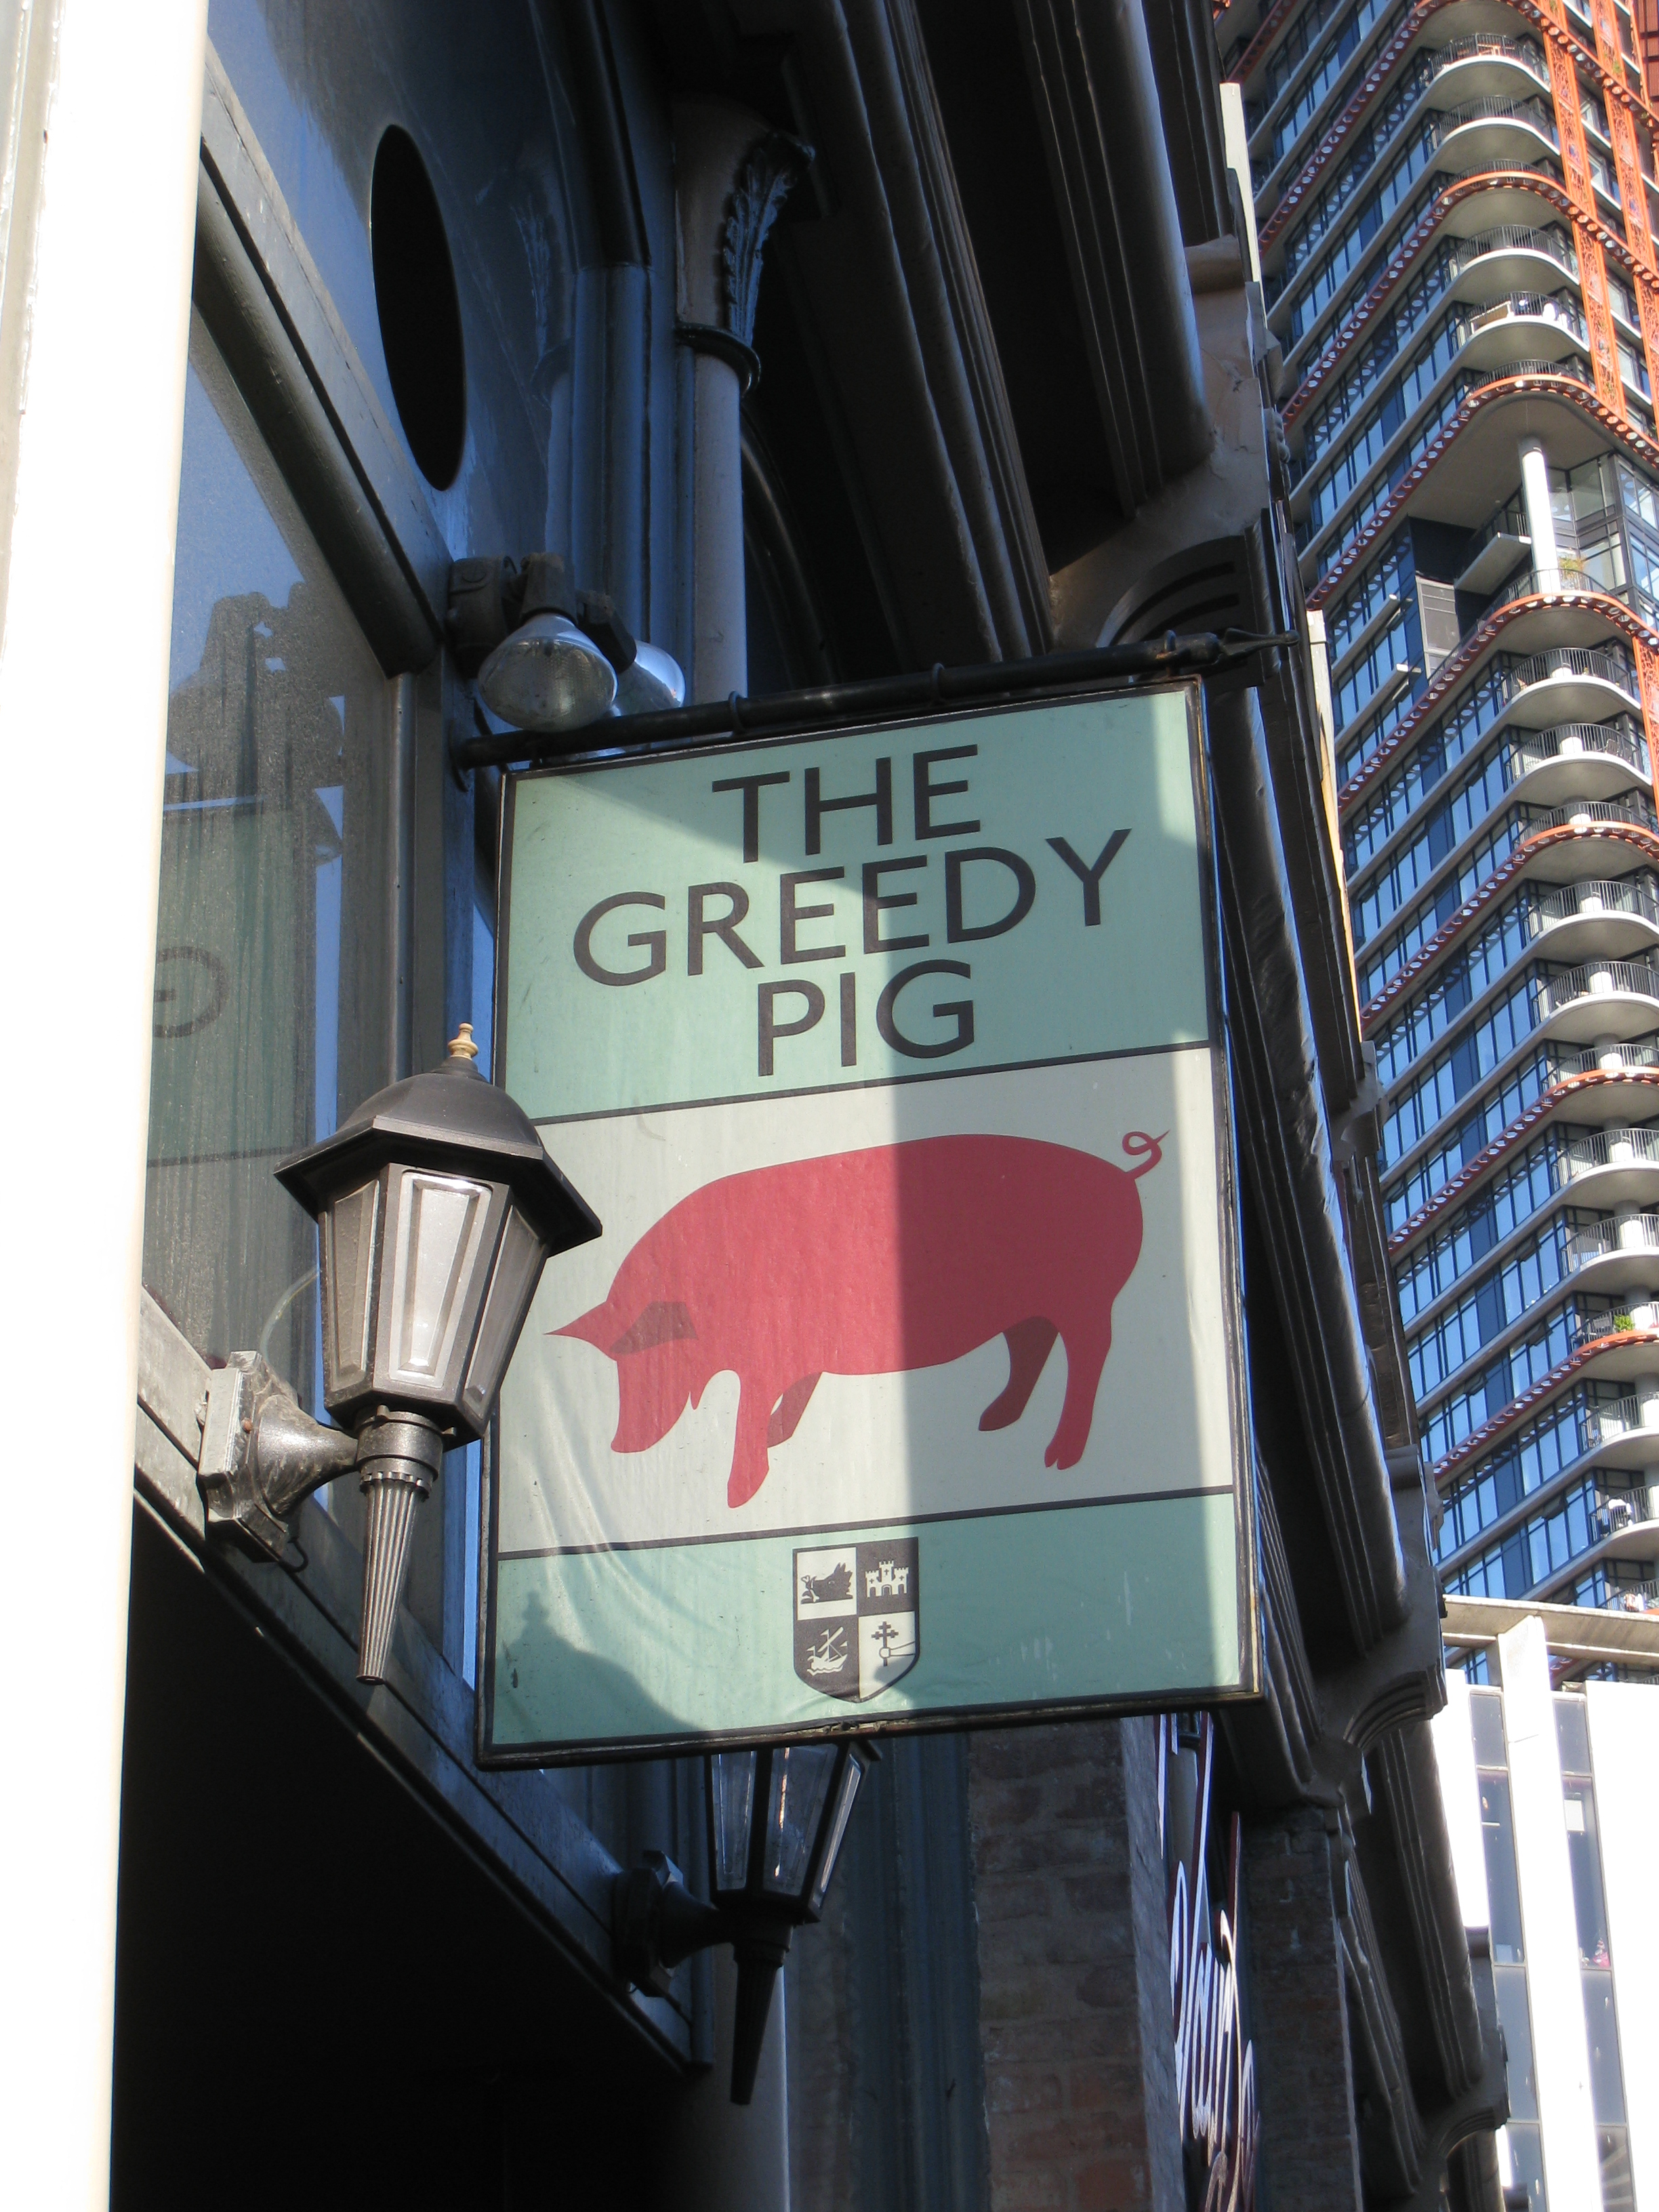 Food Punk Dylan S Candy Bar A Grown Up S Candy Store: Food Punk » The Greedy Pig